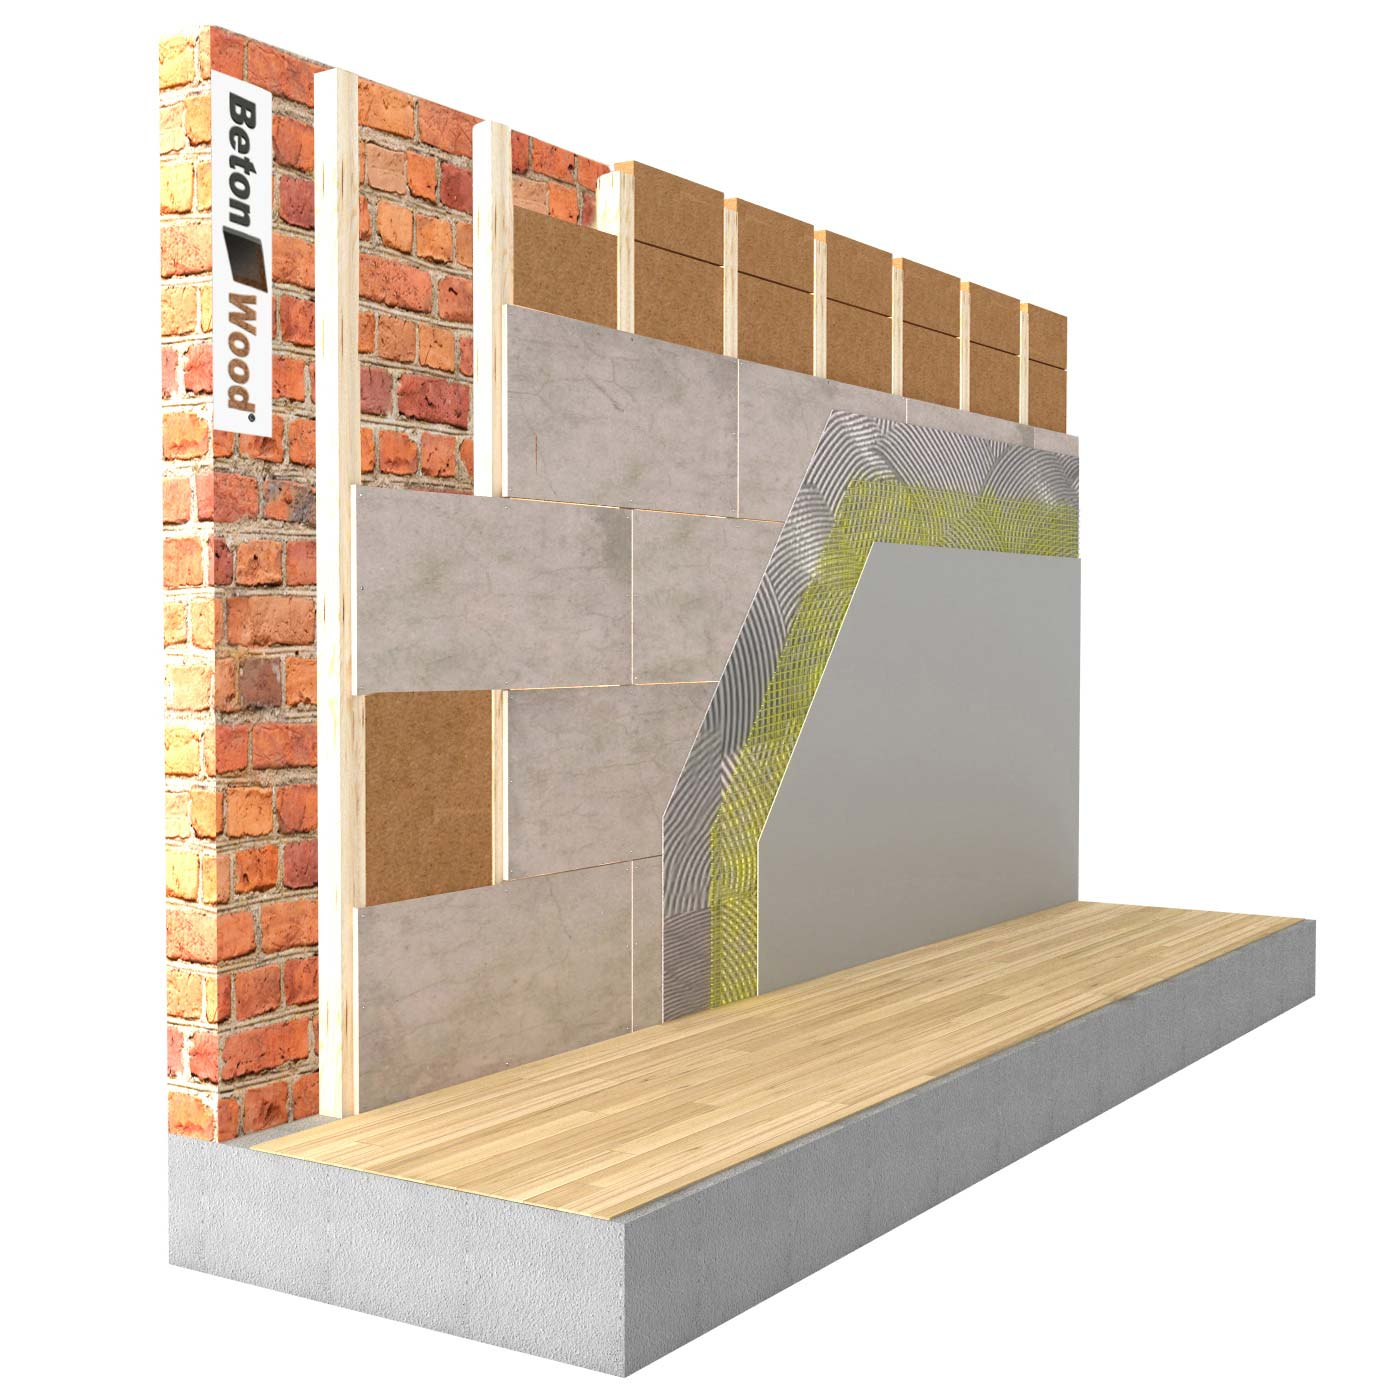 Counterwall insulation in flexible fiber wood Flex on masonry